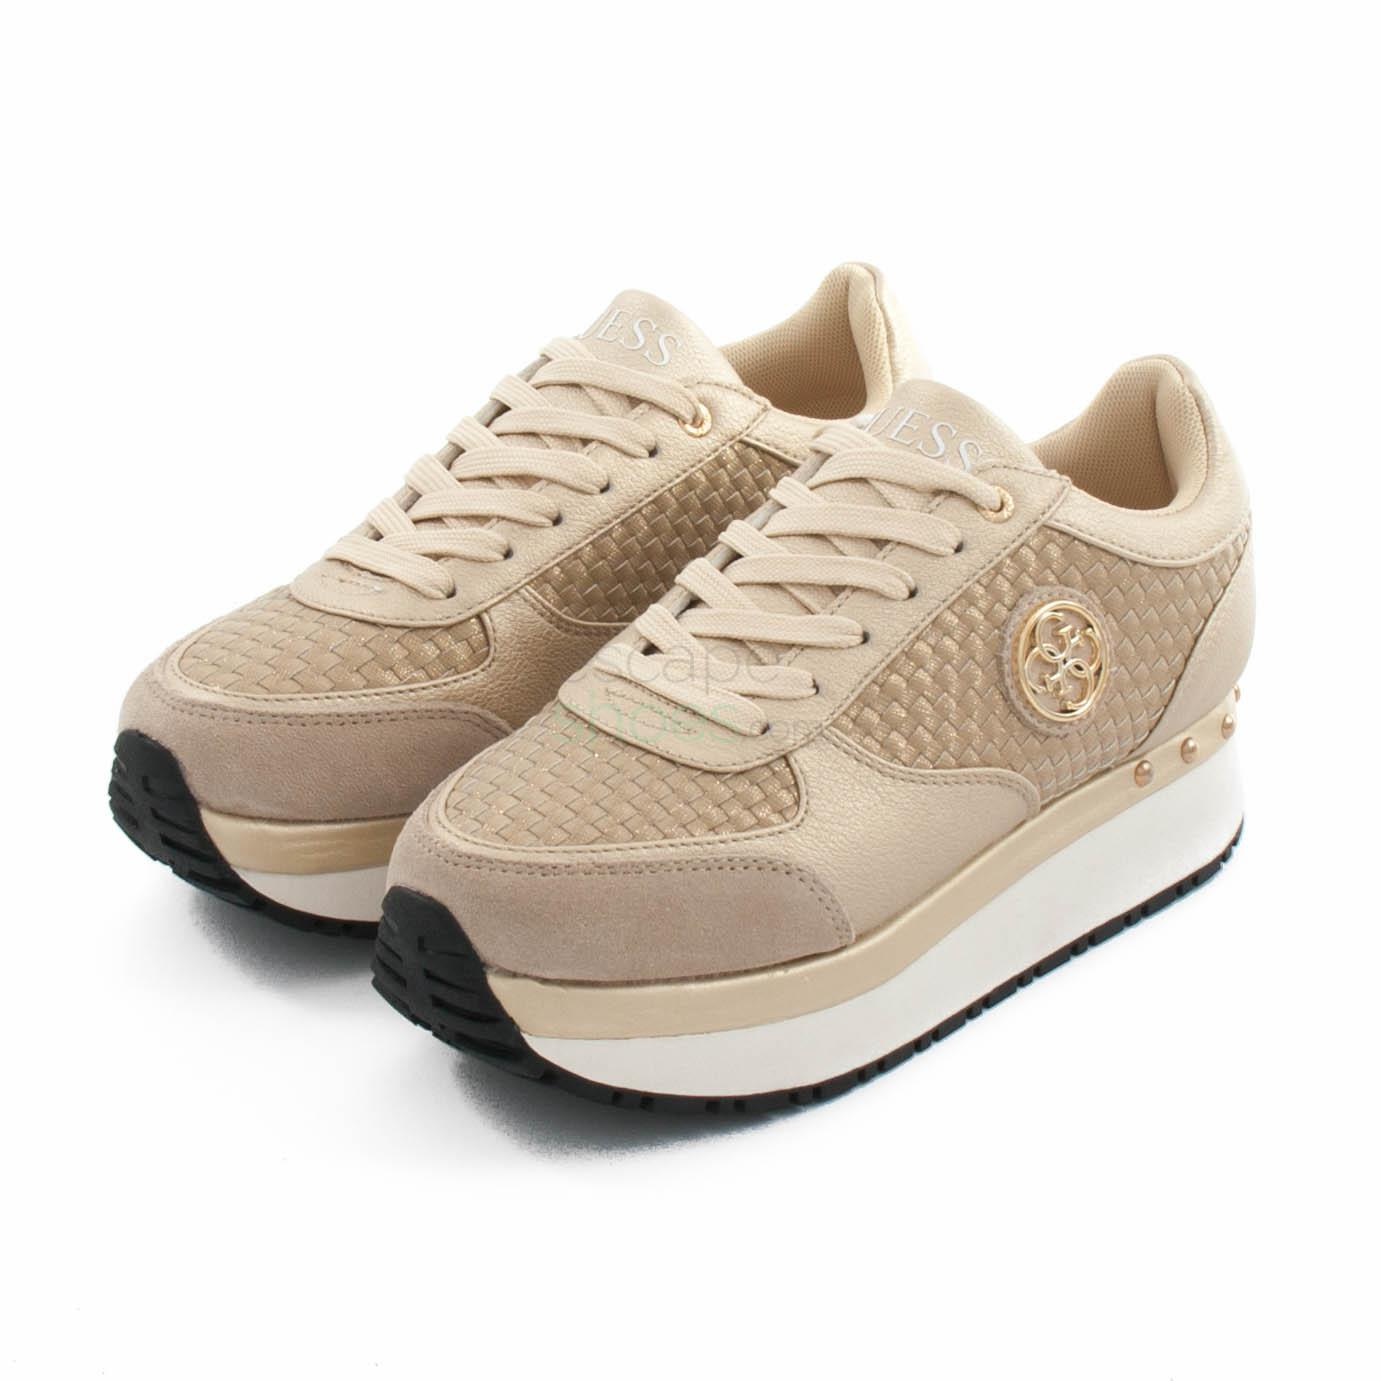 Guess Fltif1ele12 Sneakers Tiffany Gold VSpUzM